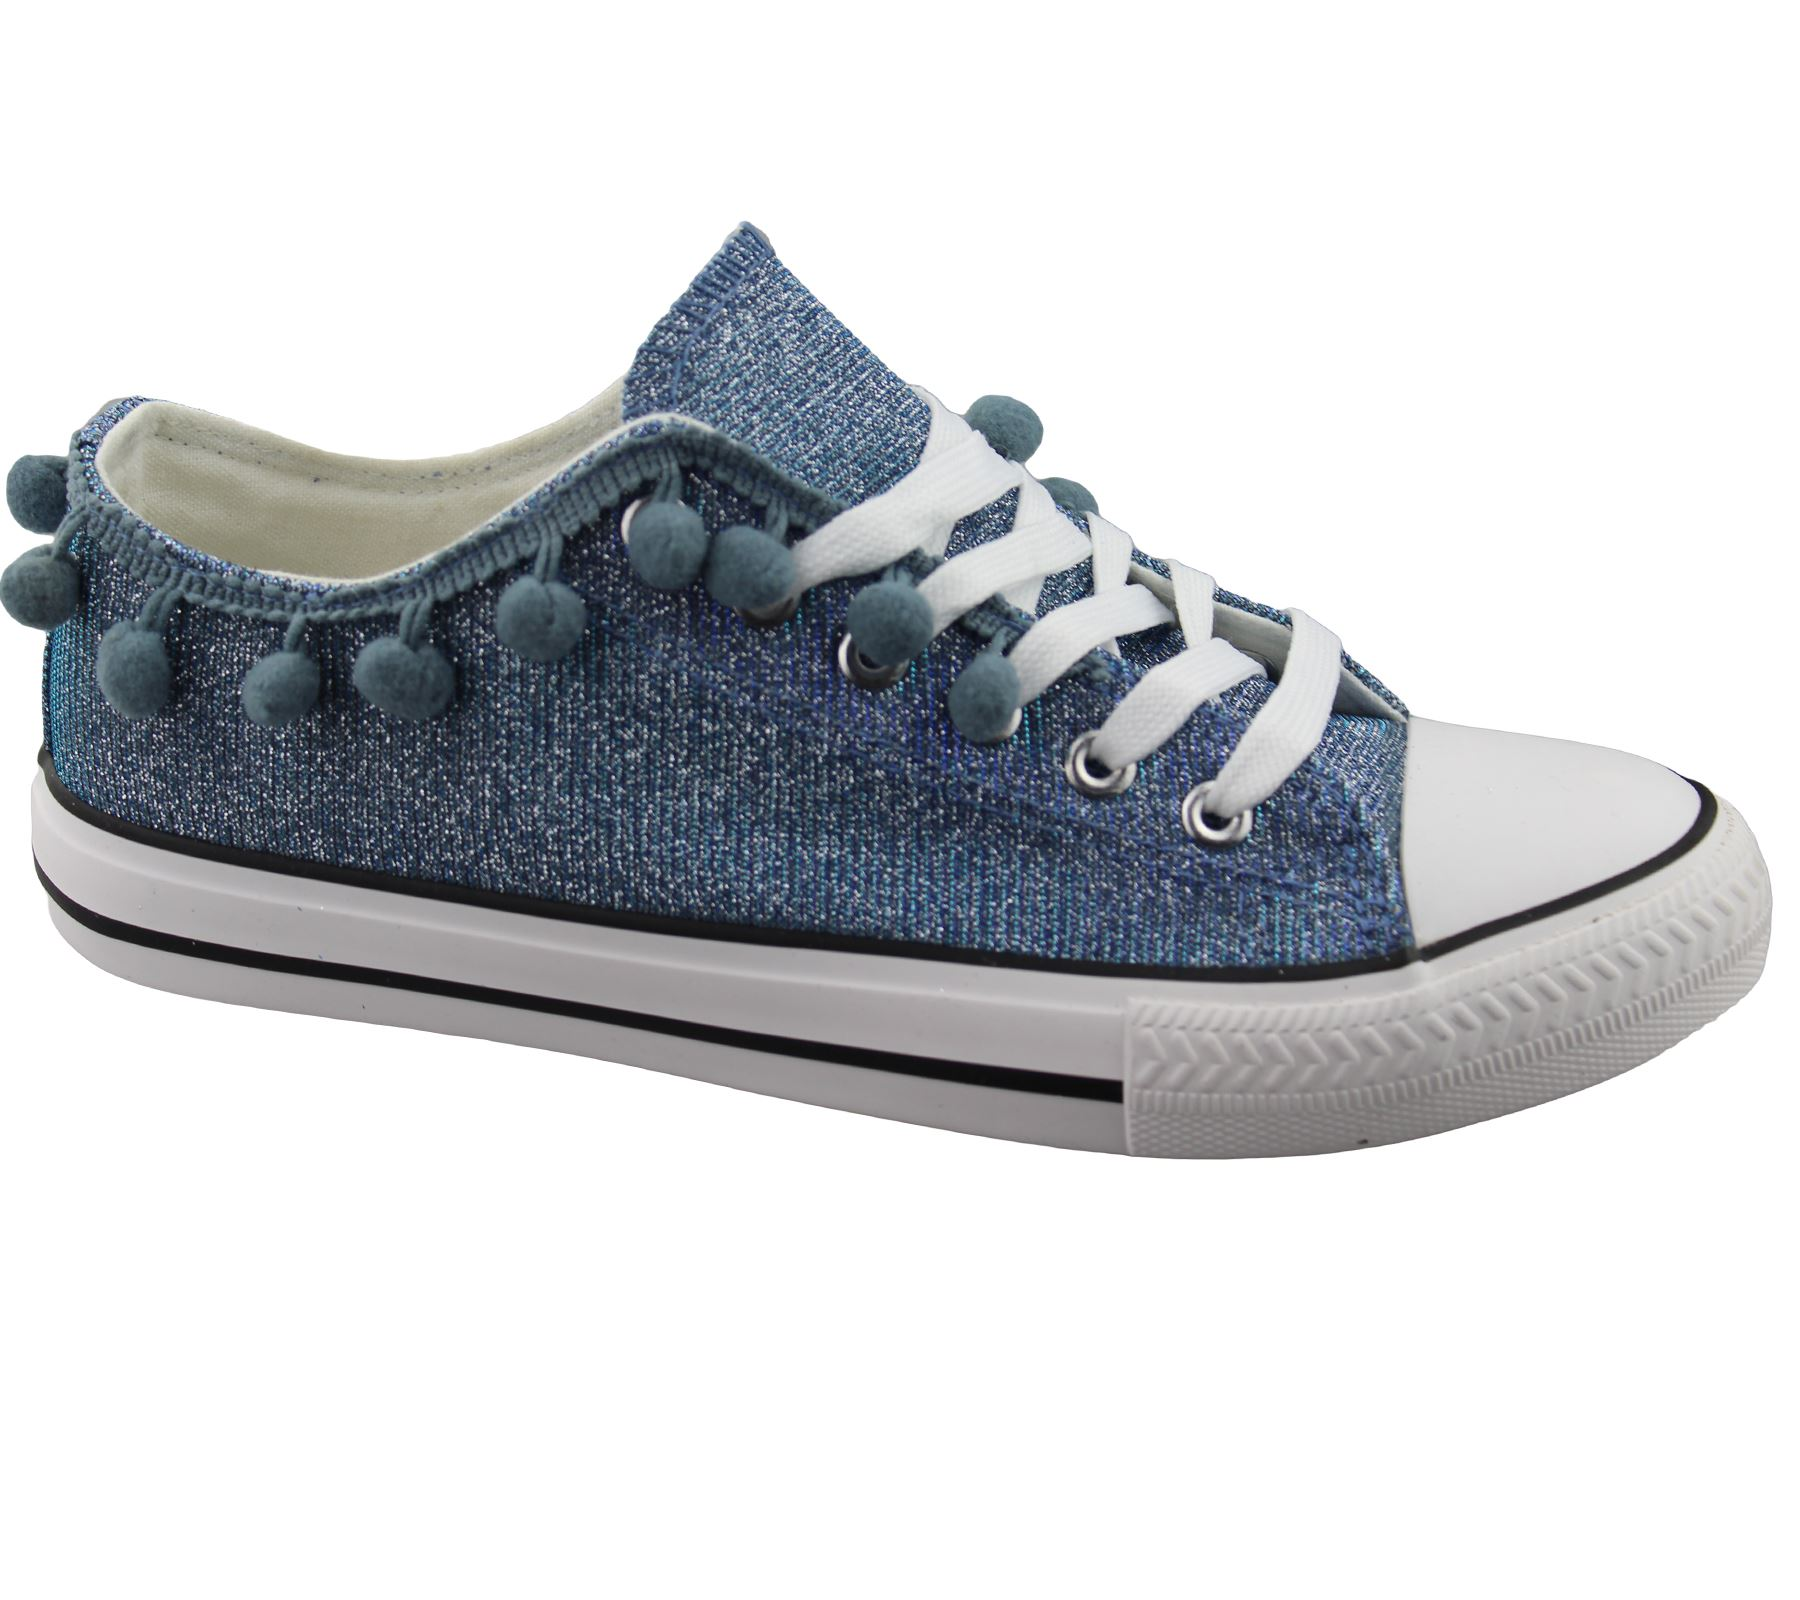 Womens-Sneakers-Flat-Pumps-Ladies-Glittered-Summer-Plimsole-Canvas-Shoes thumbnail 23